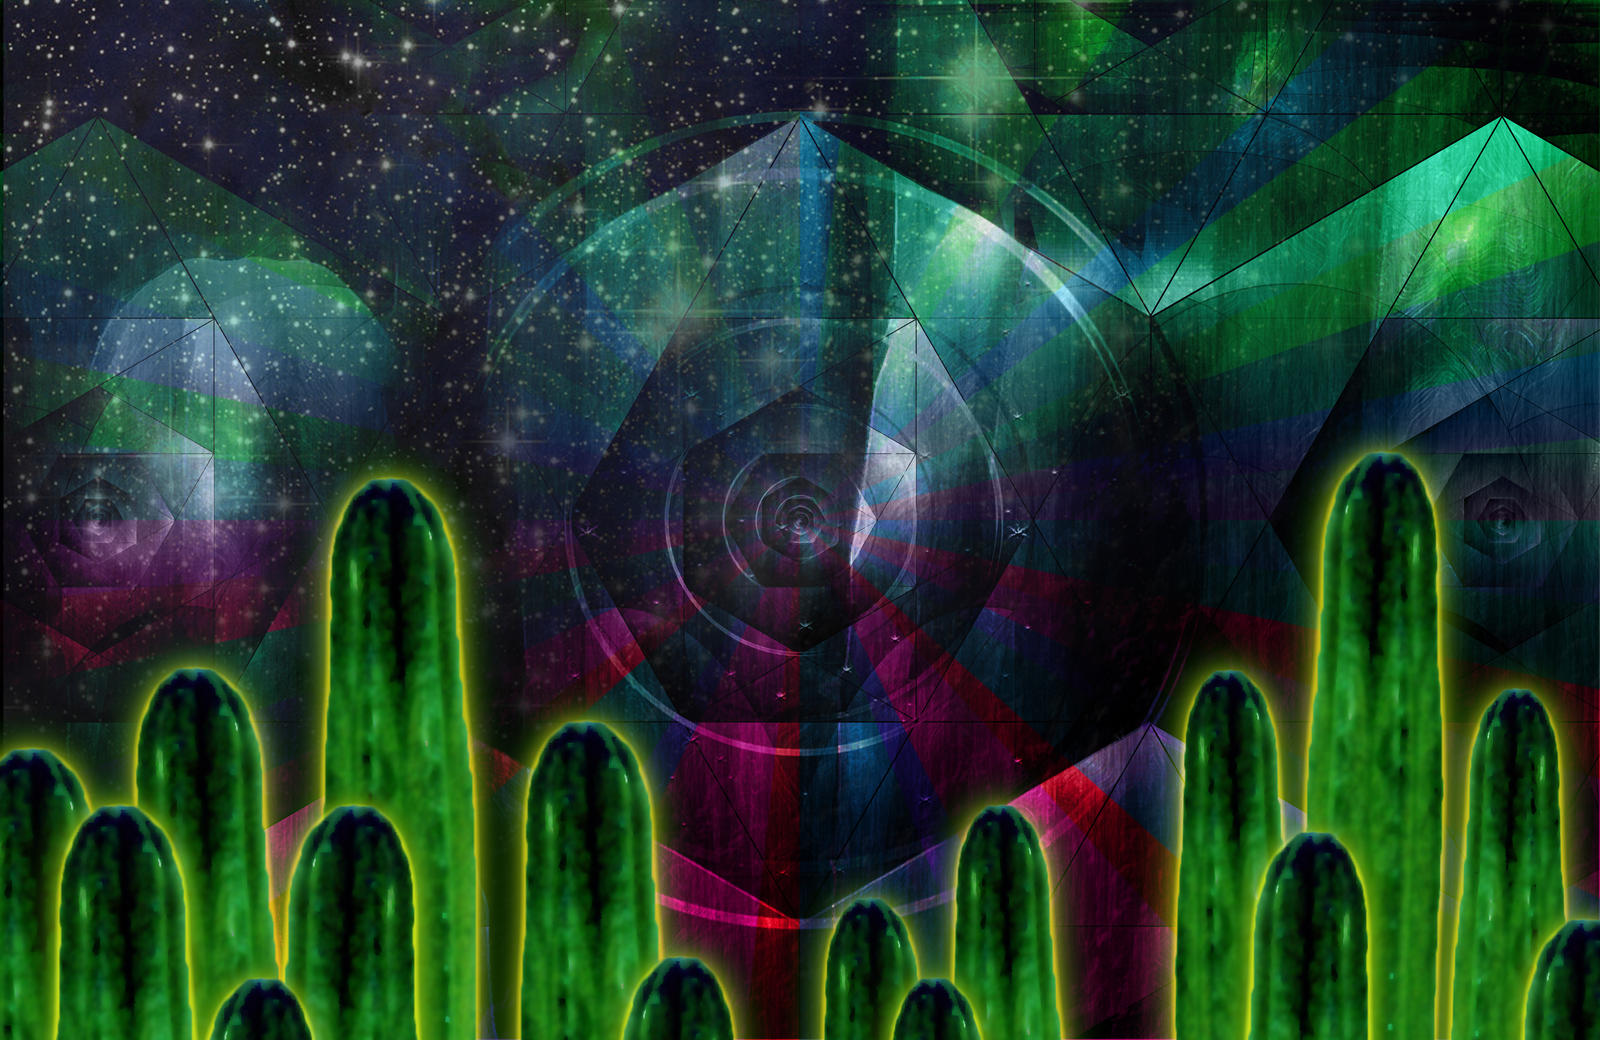 Cactus consciousness by lokispace